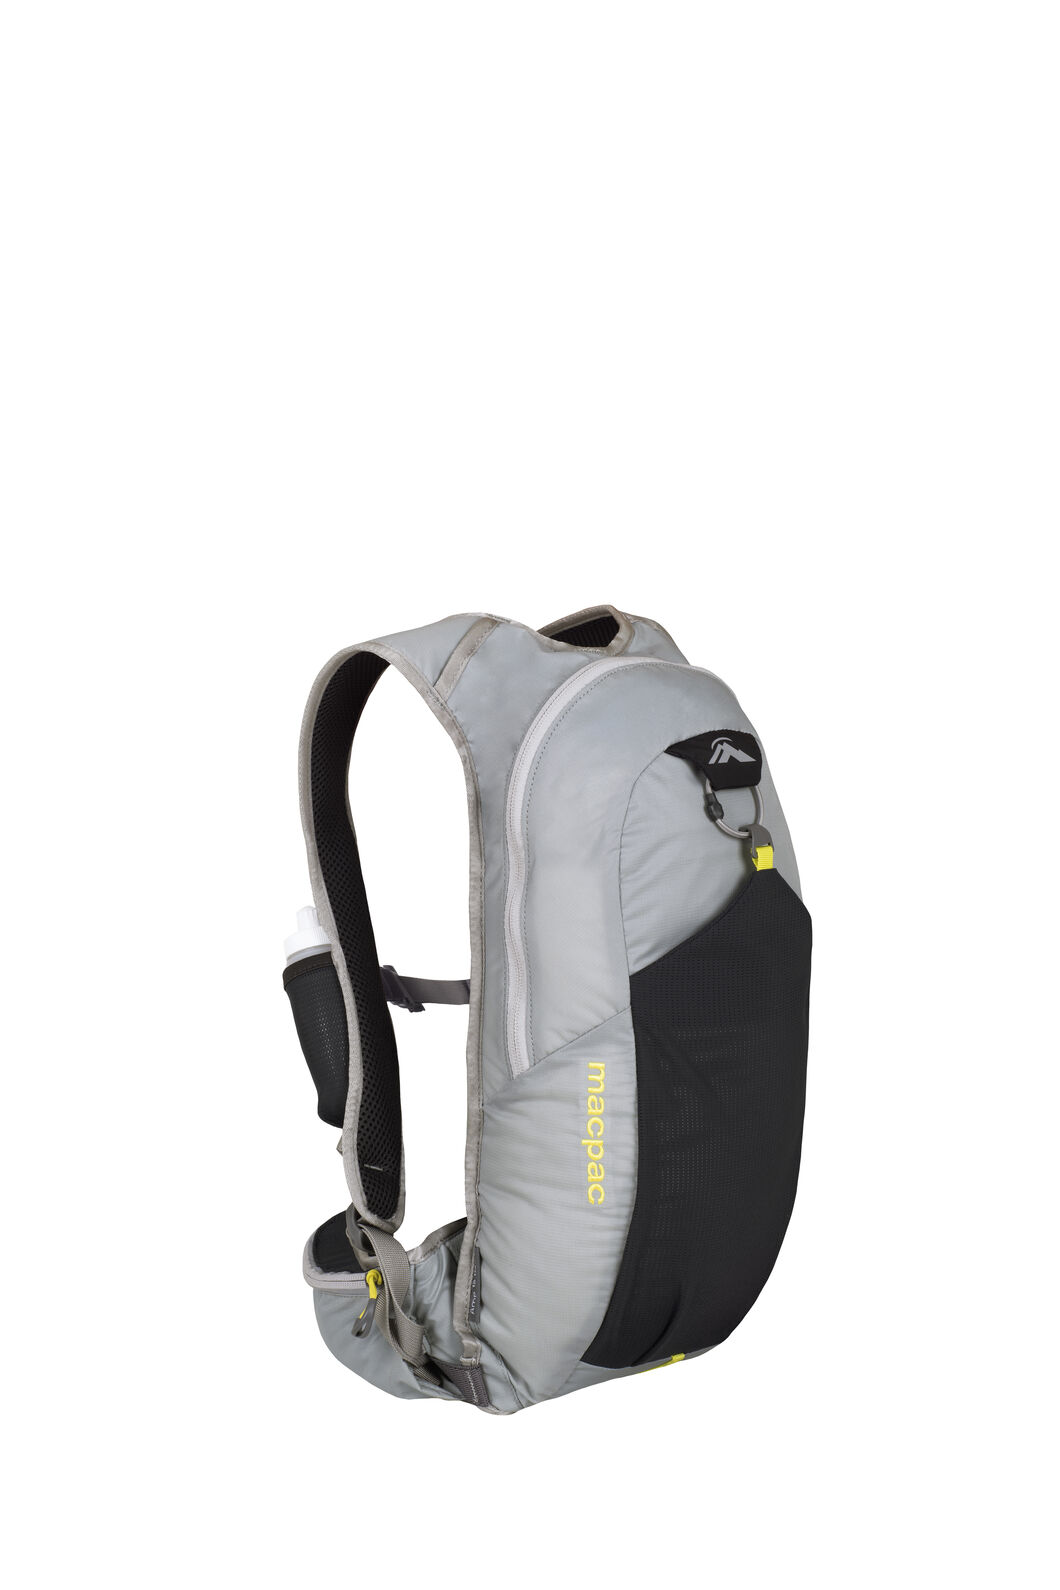 Macpac Amp 12 Hour 7L Running Pack, Highway, hi-res